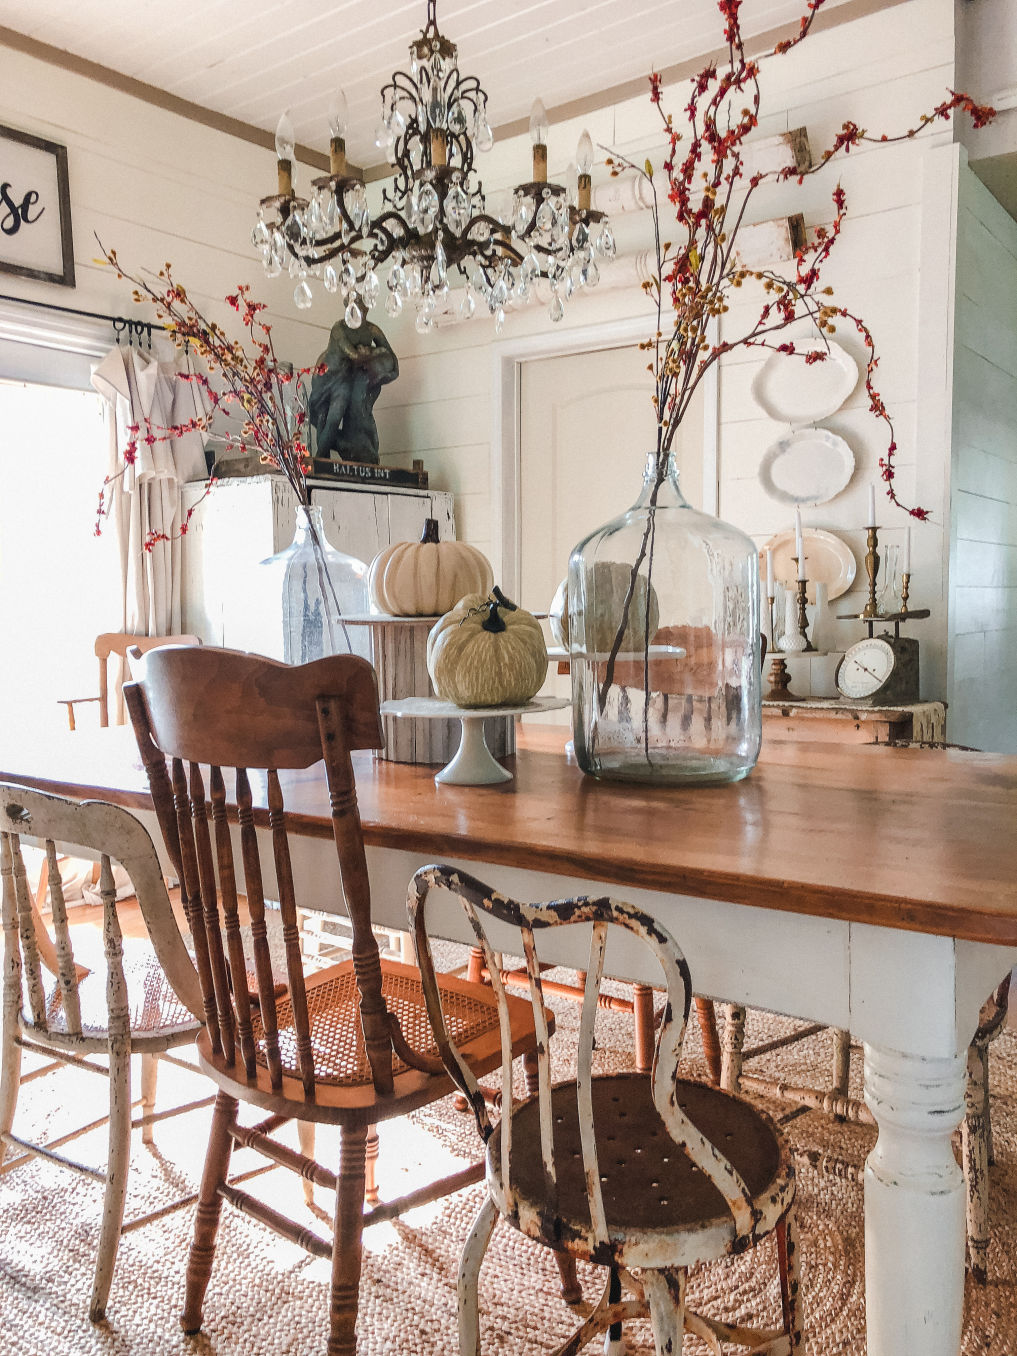 Farmhouse dining room with mismatched vintage chairs and pumpkin centerpiece kellyelko.com #falldecor #falldecorating #diningroom #farmhousediningroom #farmhousedecor #farmhousestyle #centerpiece #shiplap